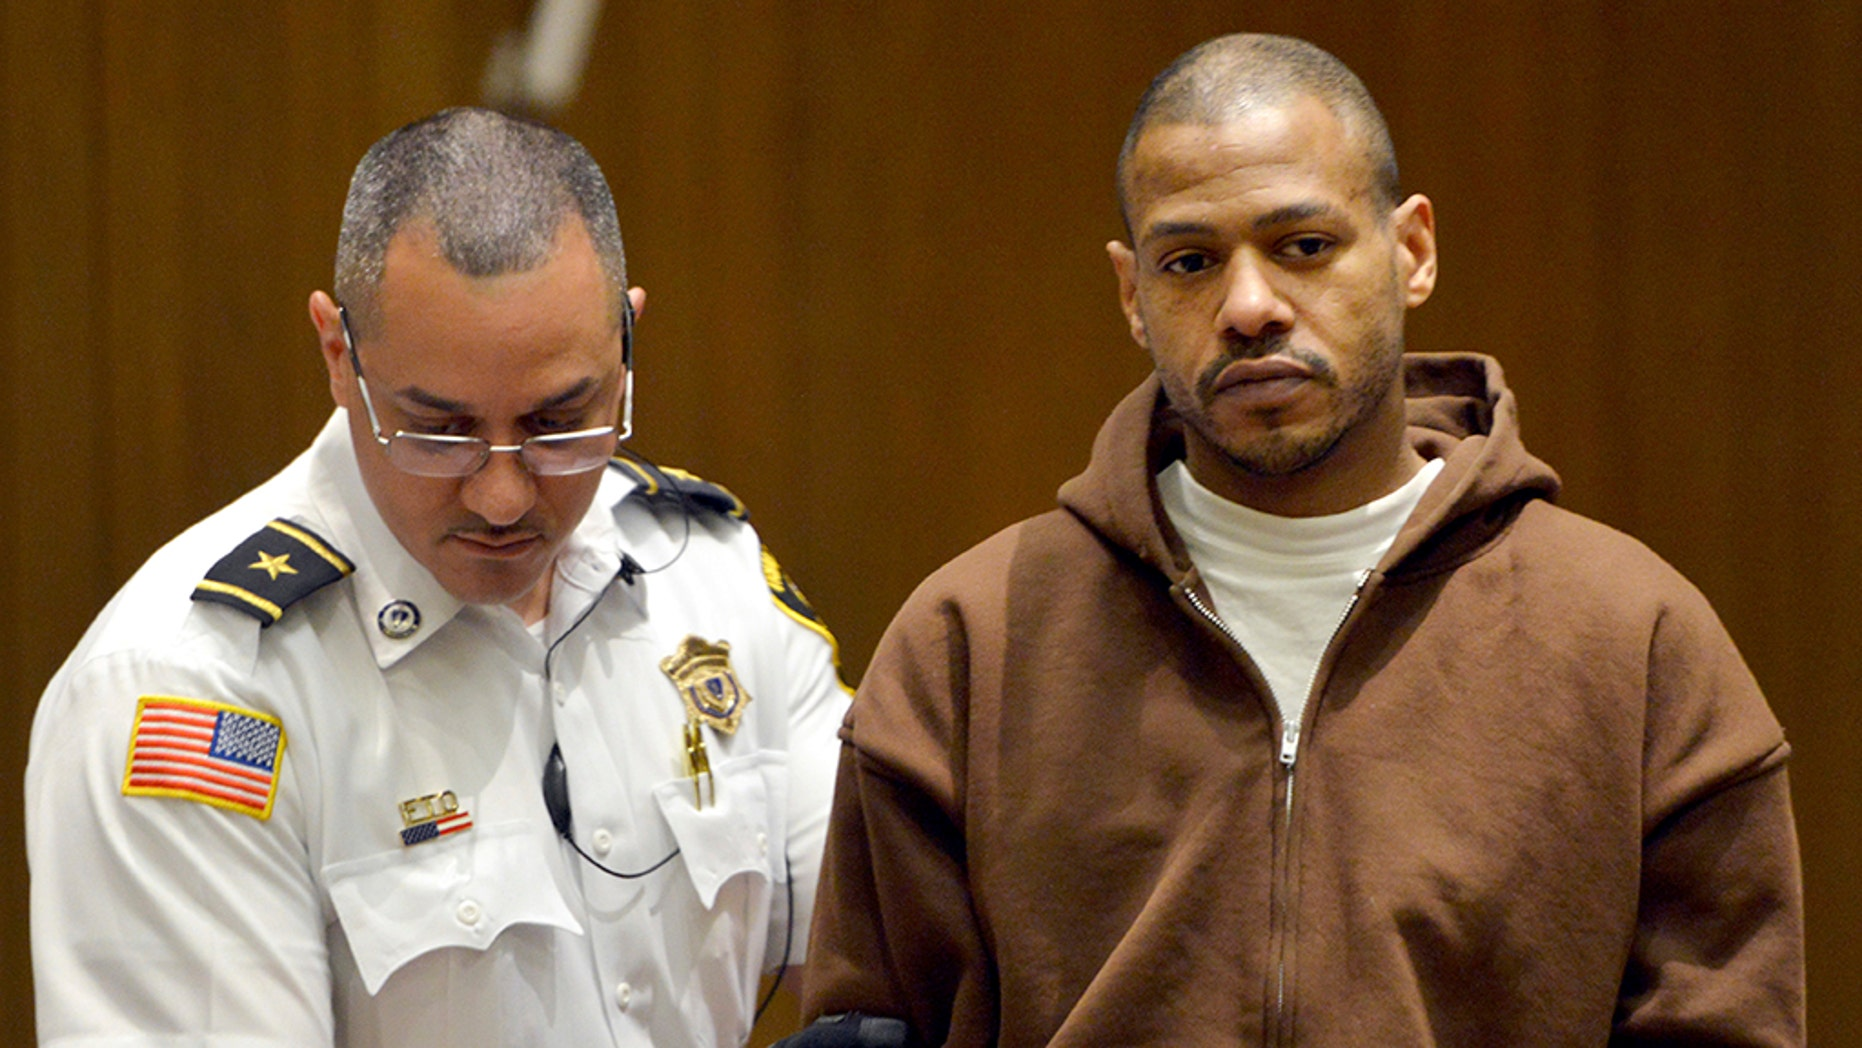 Massachusetts man indicted on murder charges after women's bodies